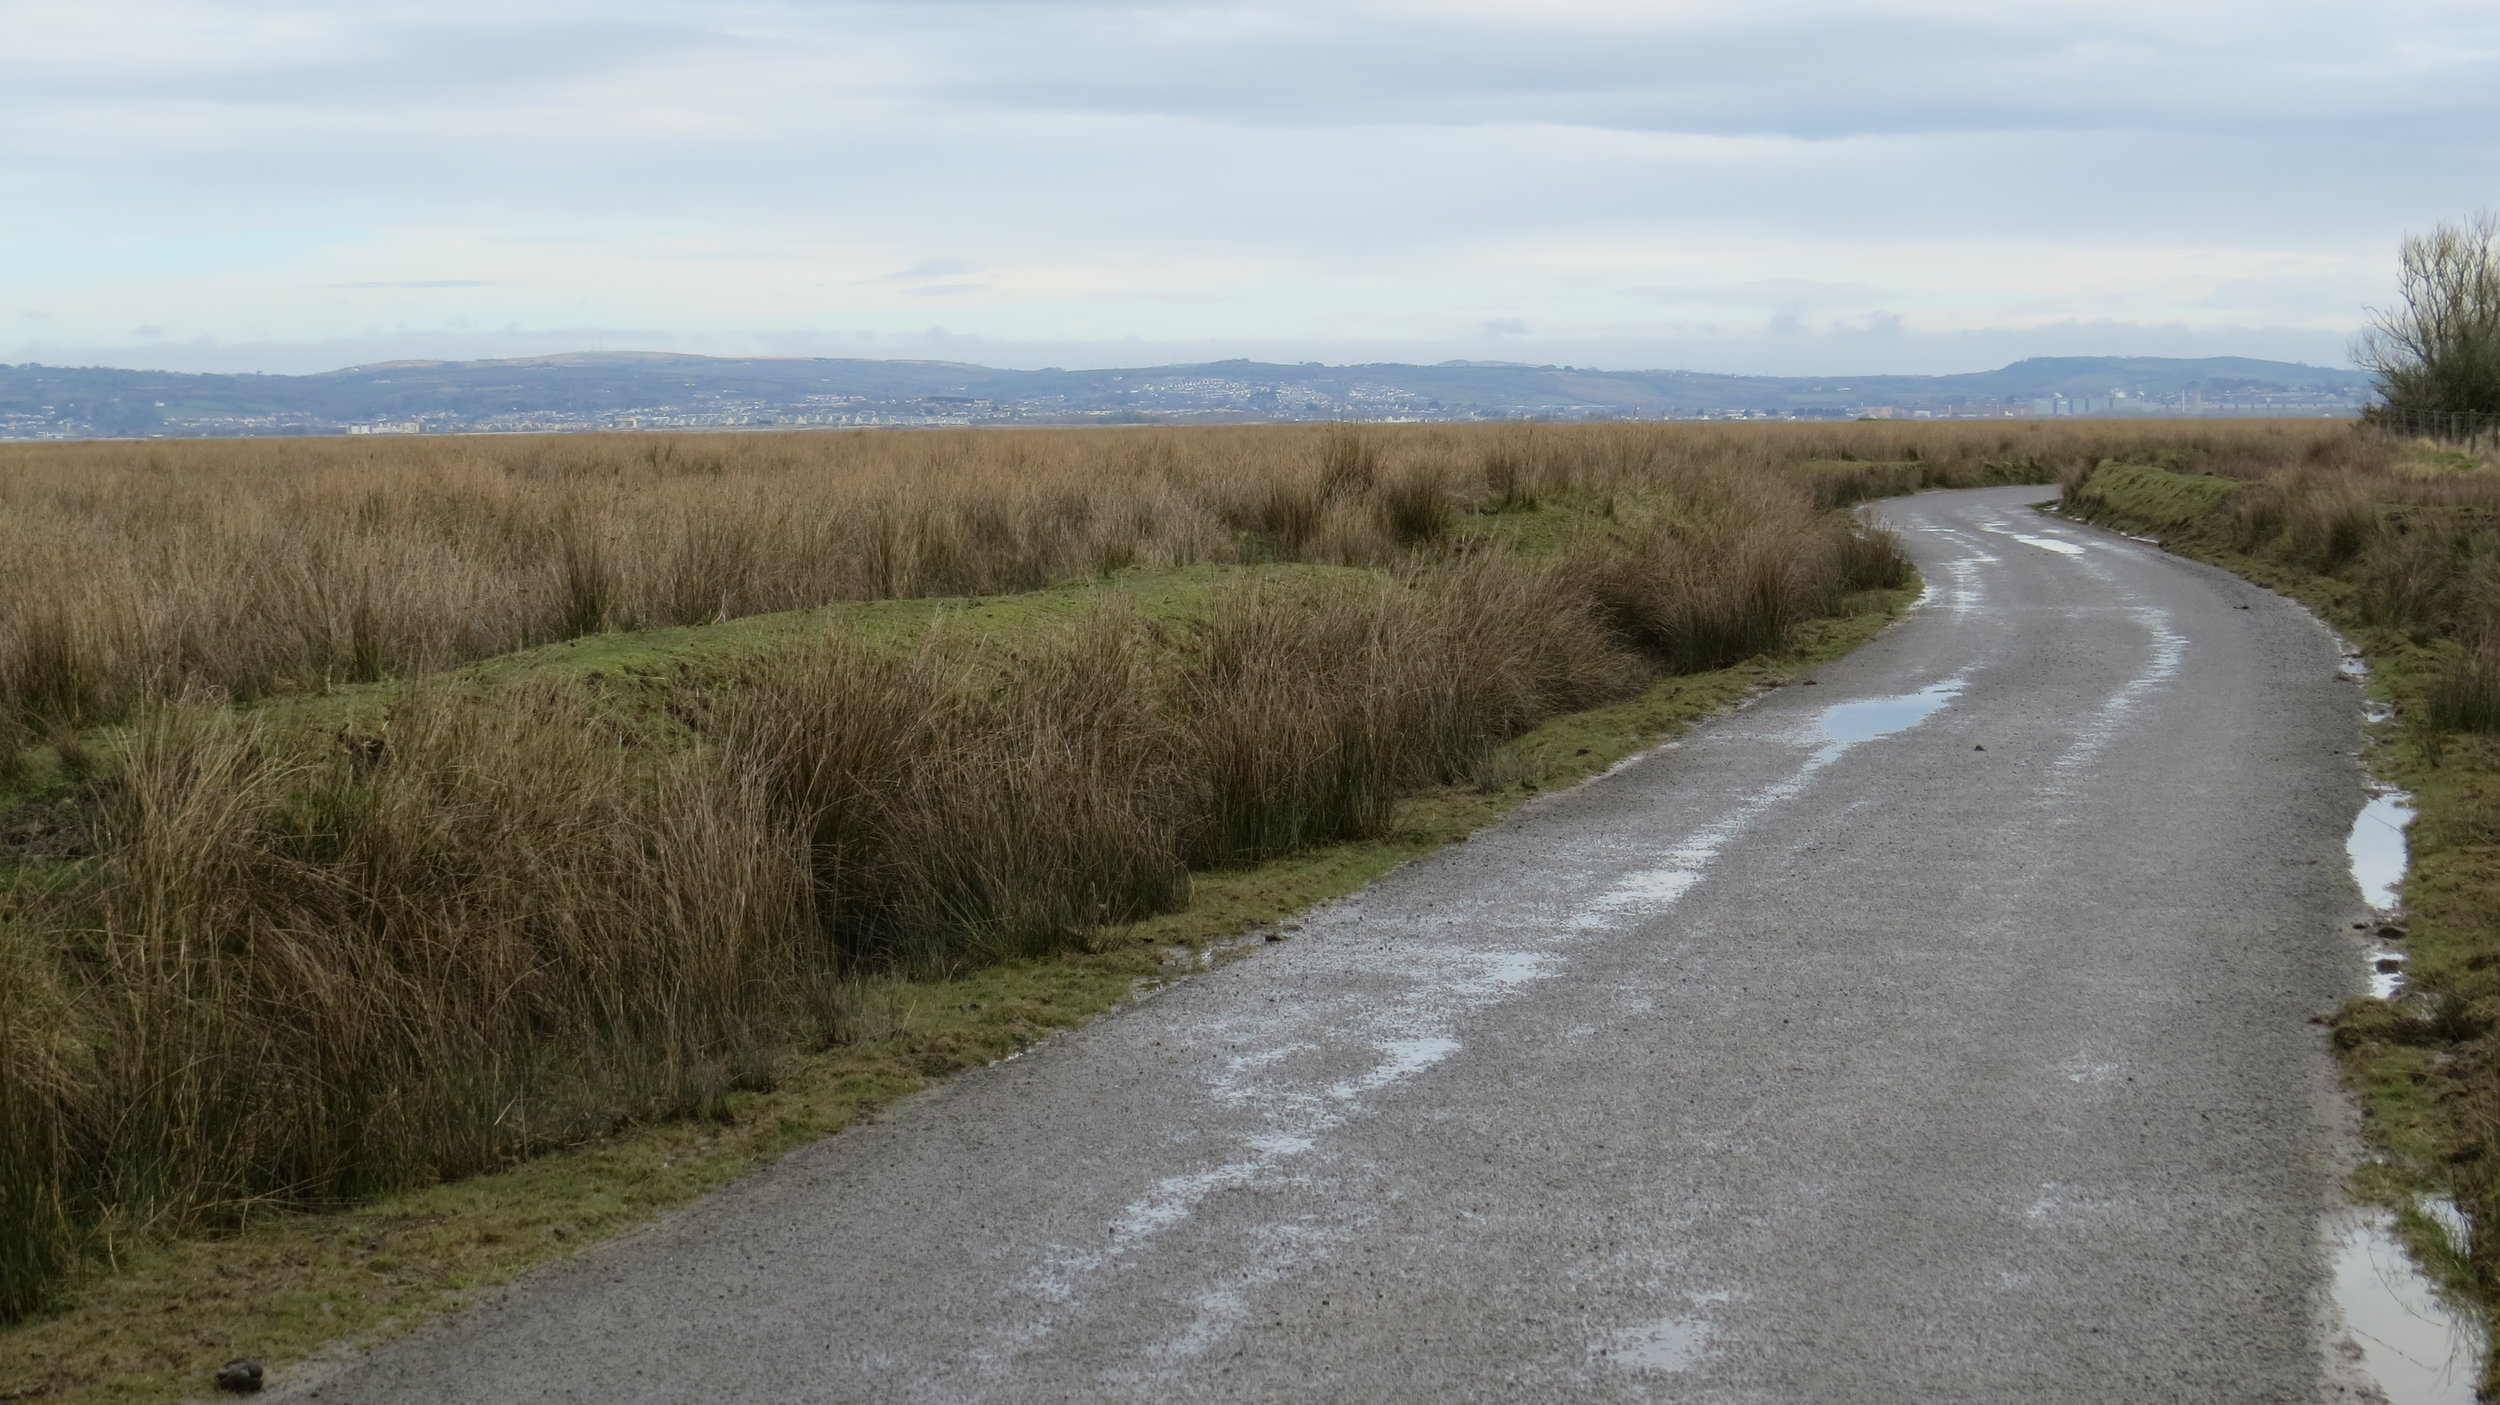 Road through Marshes